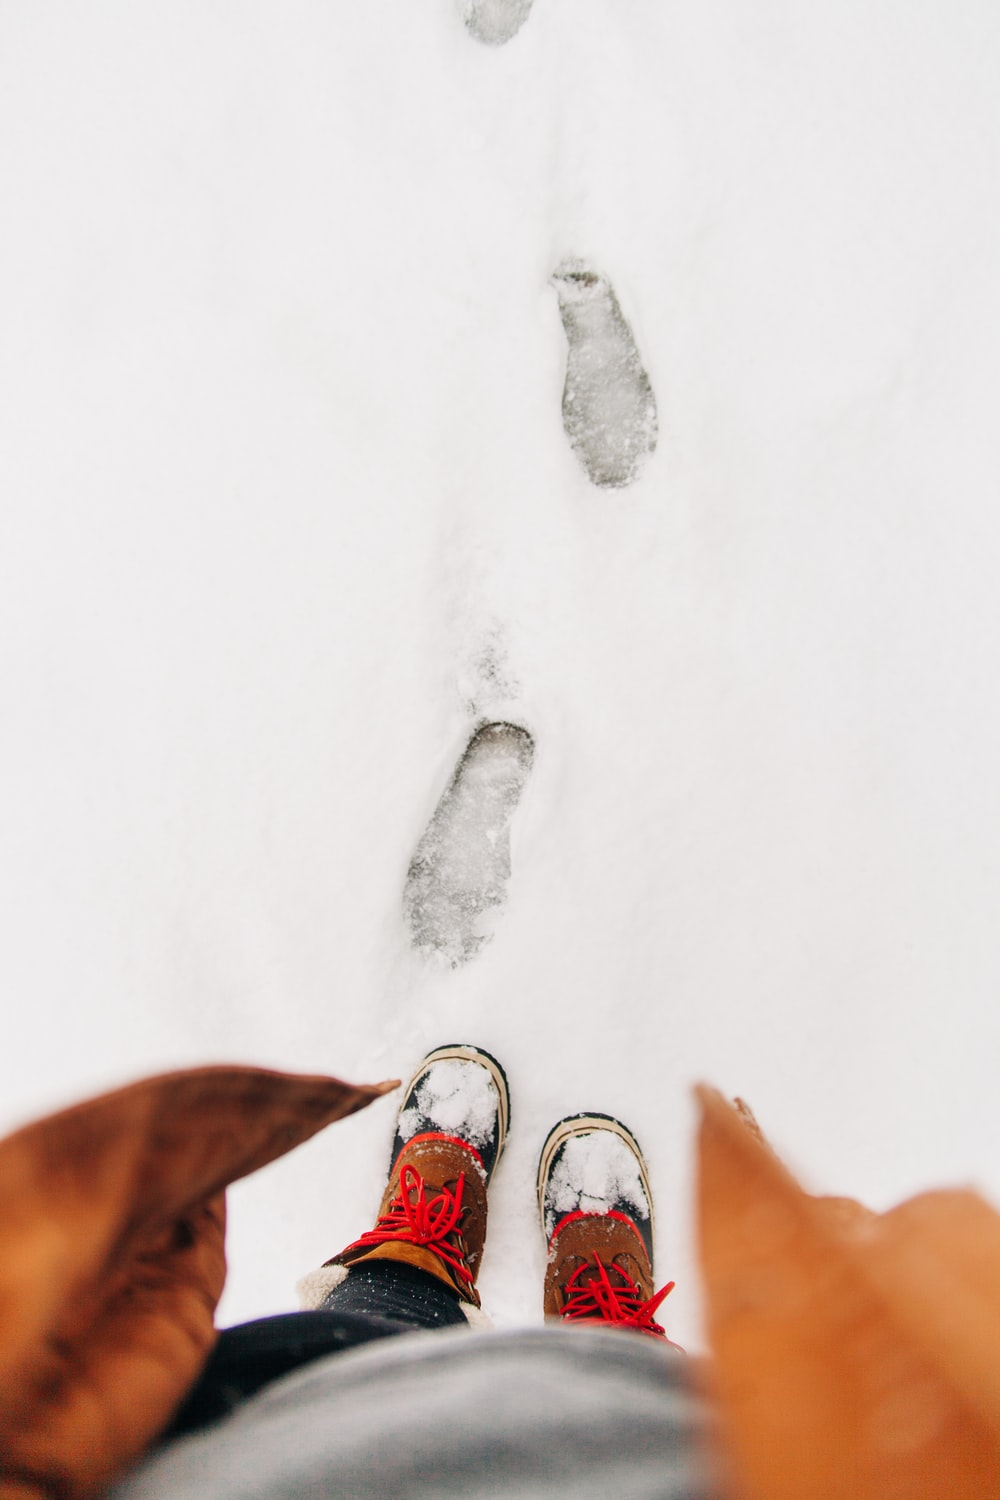 person standing on snowfield with footprints